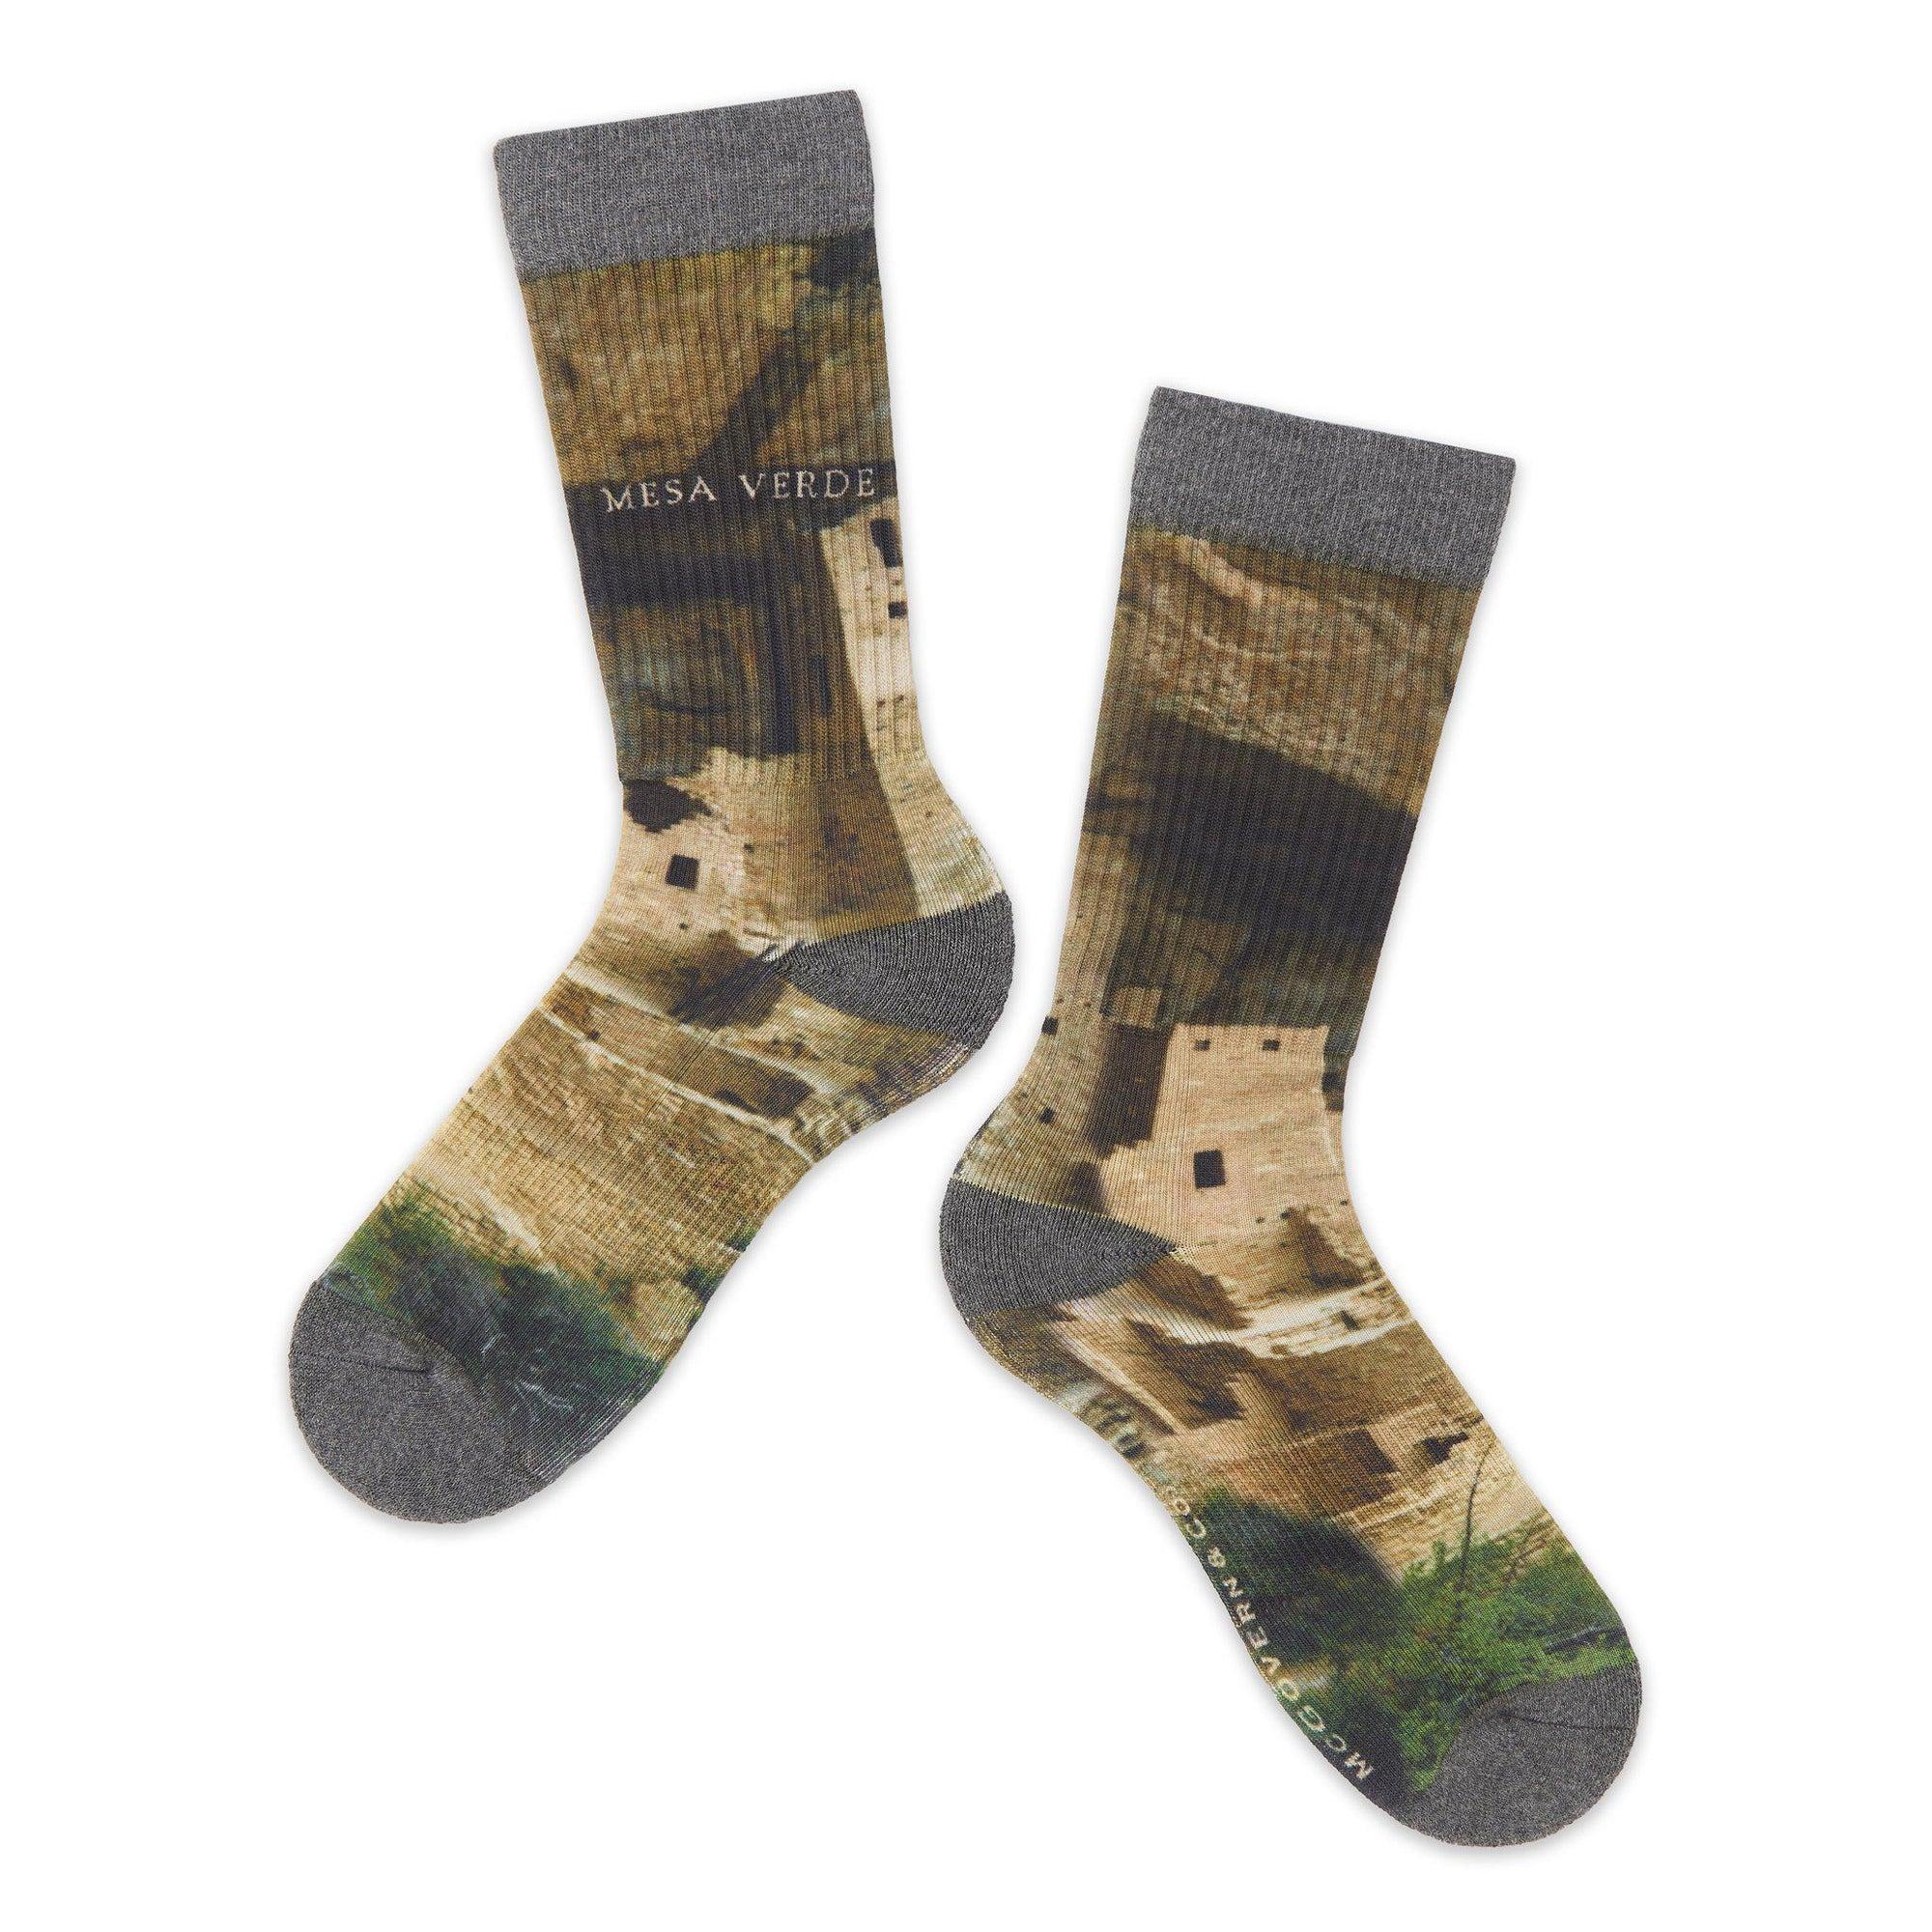 Mesa Verde National Park Photo Socks